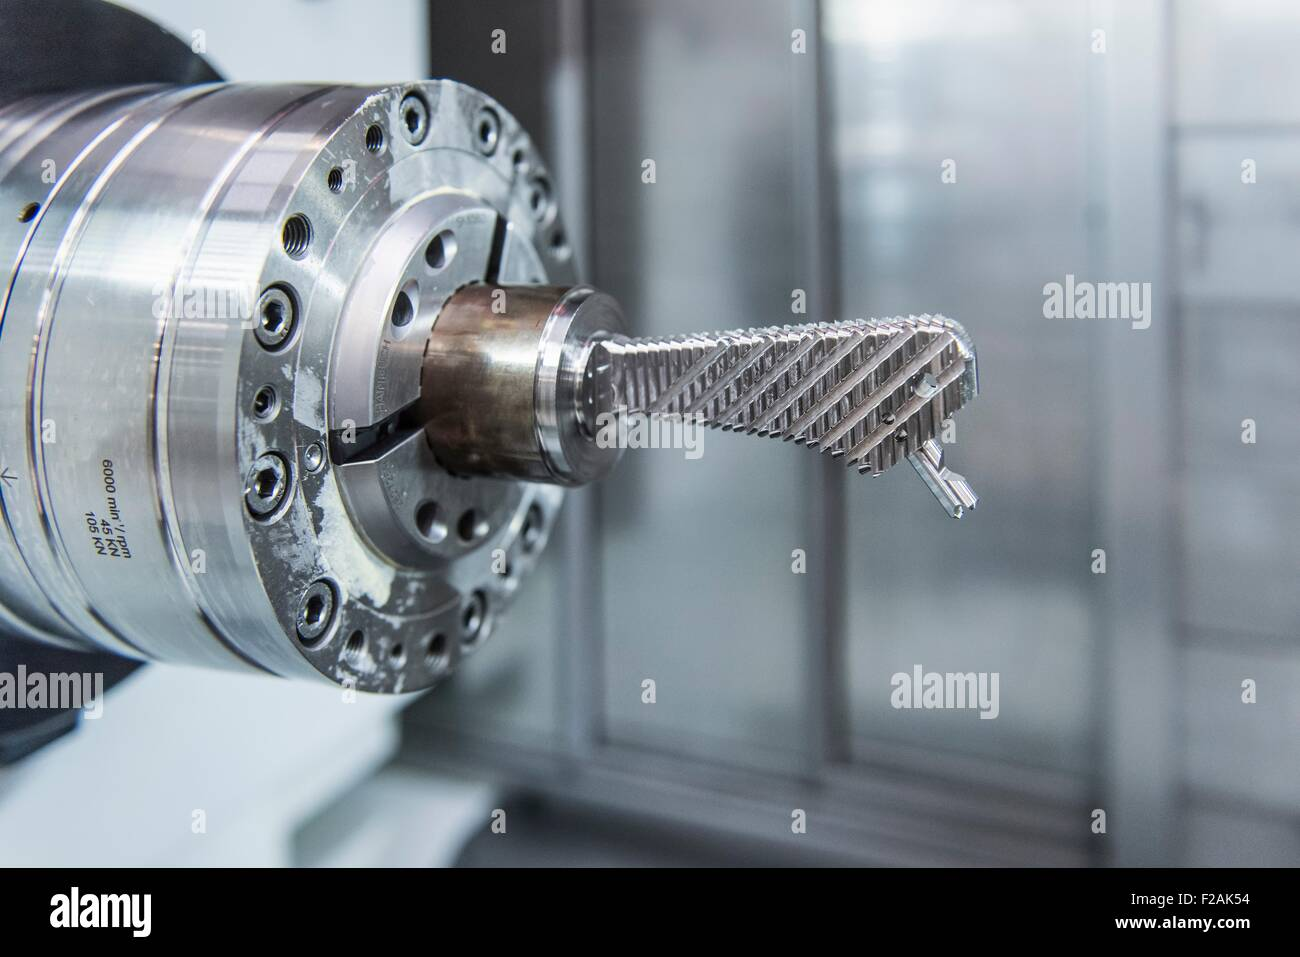 Artificial hip joint in CNC lathe in orthopaedic factory, close up - Stock Image